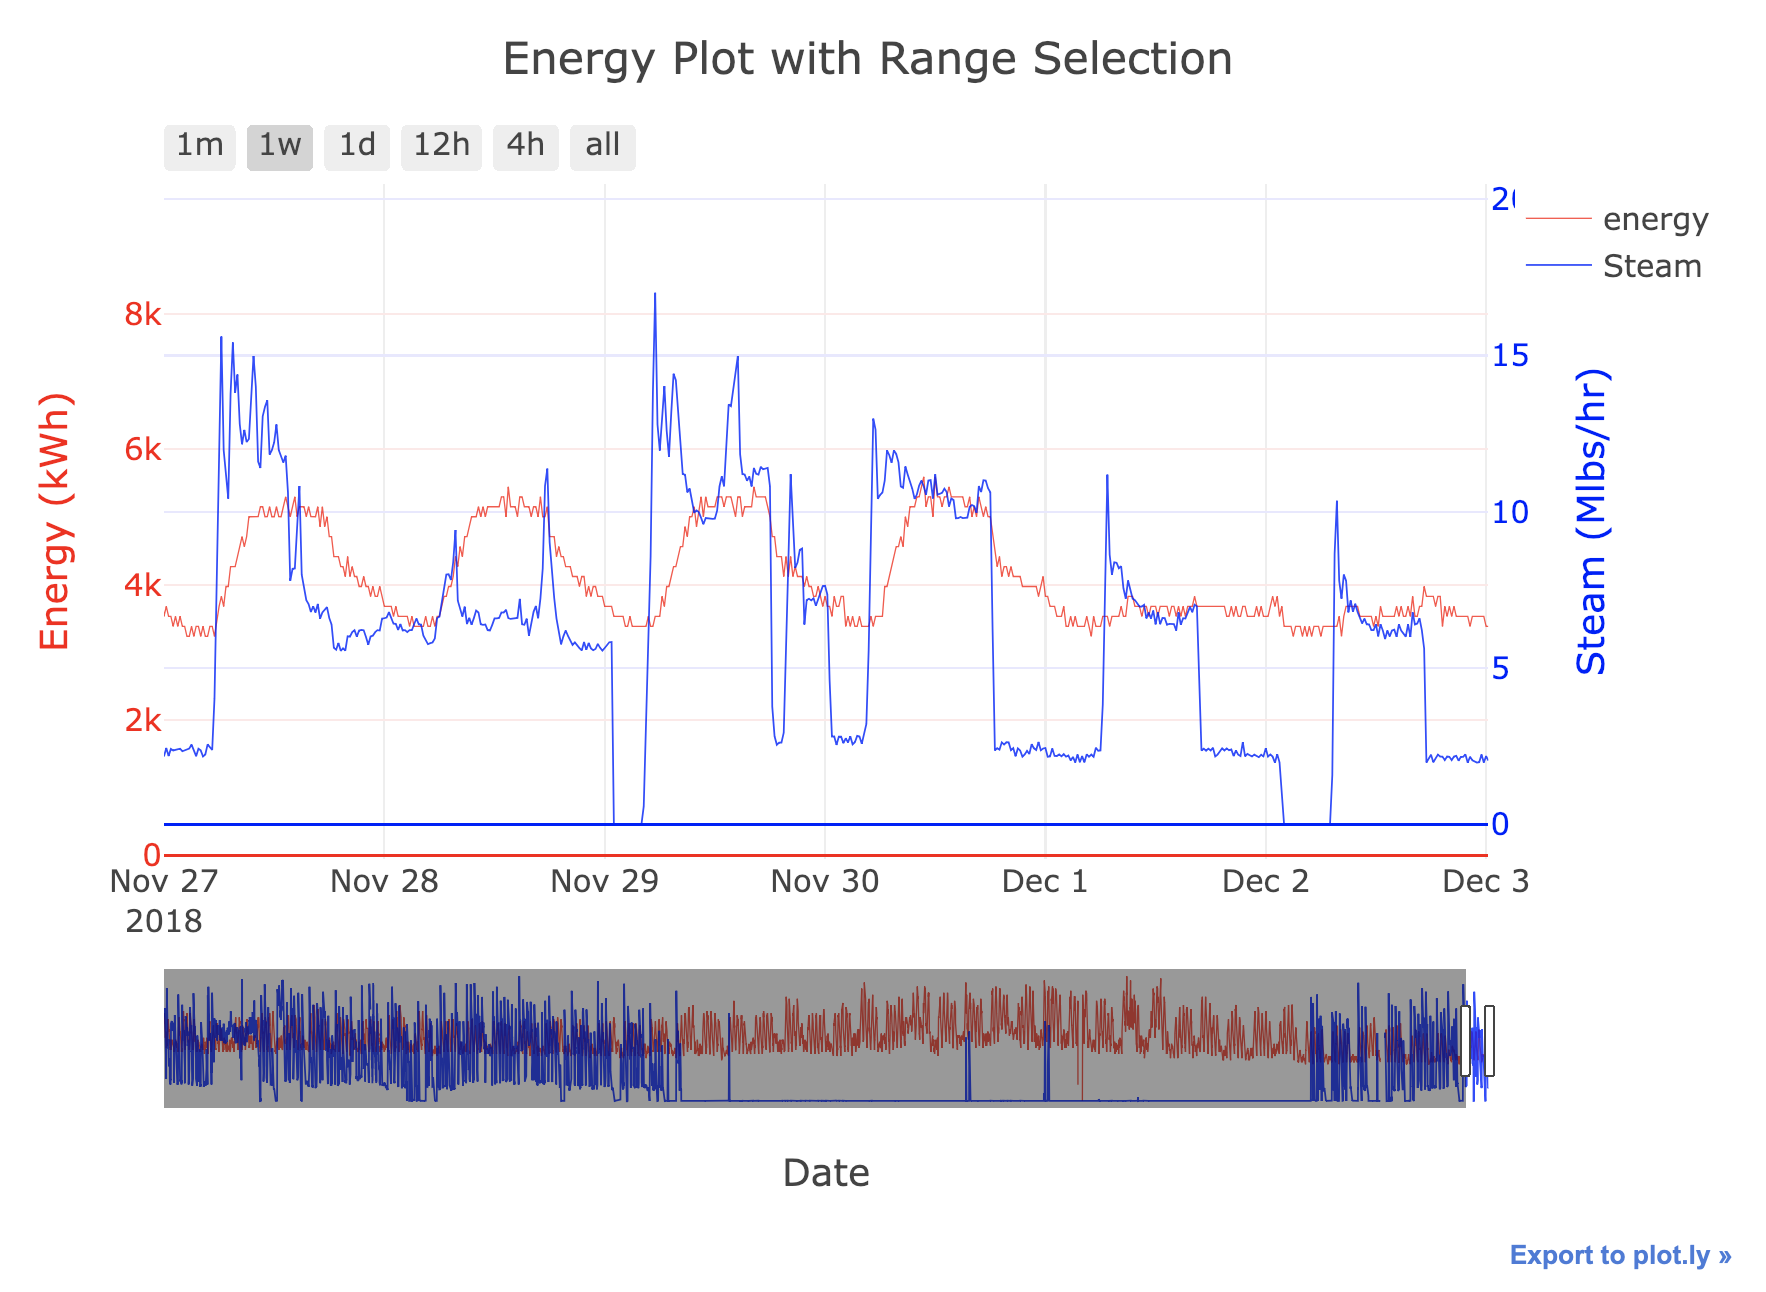 Introduction to Interactive Time Series Visualizations with